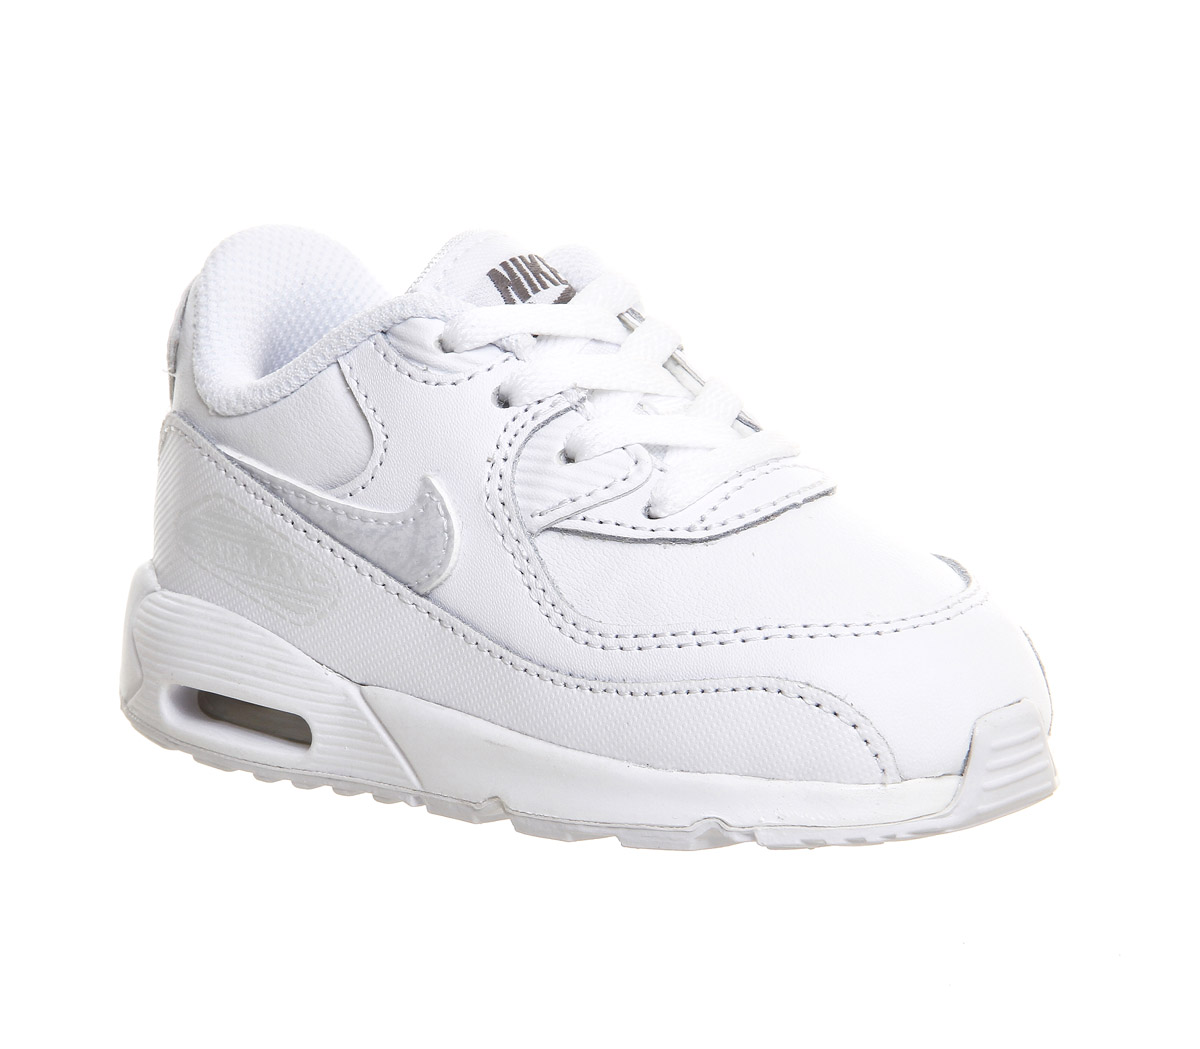 quality design a4630 a390b Nike Air Max 90 Toddler Trainers White White Cool Grey - Unisex